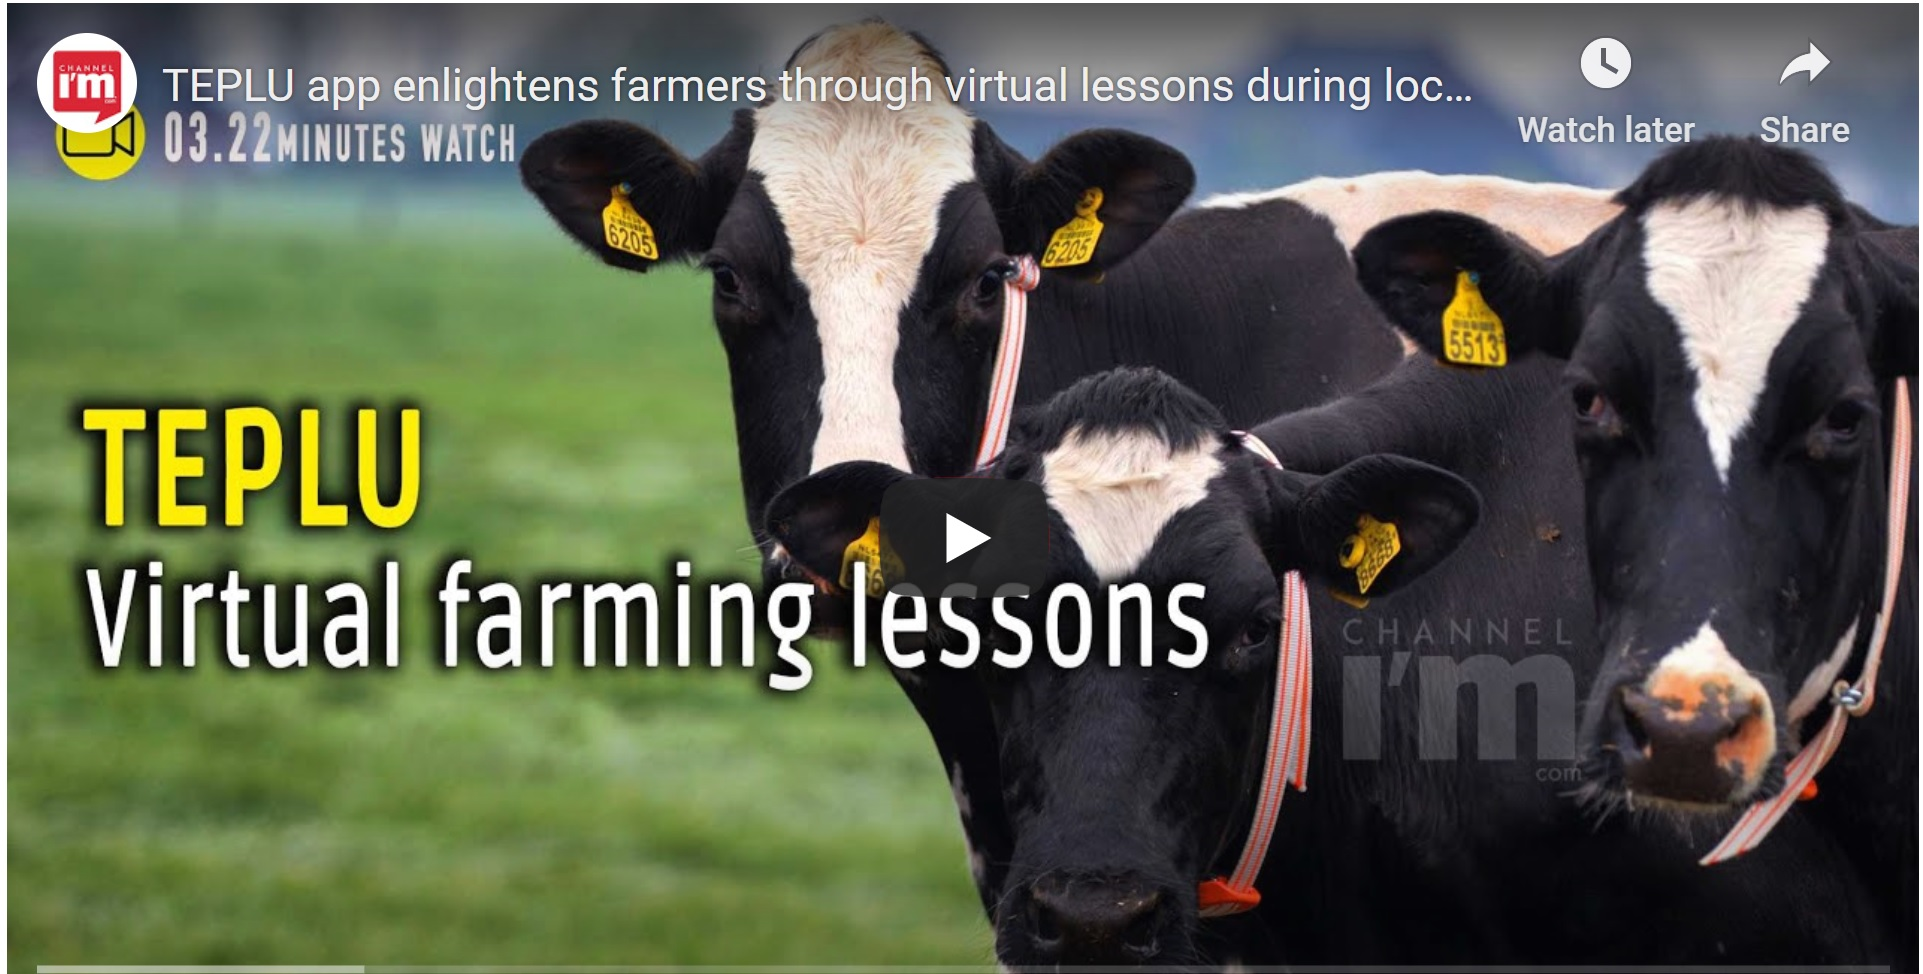 learn dairy farming from experts